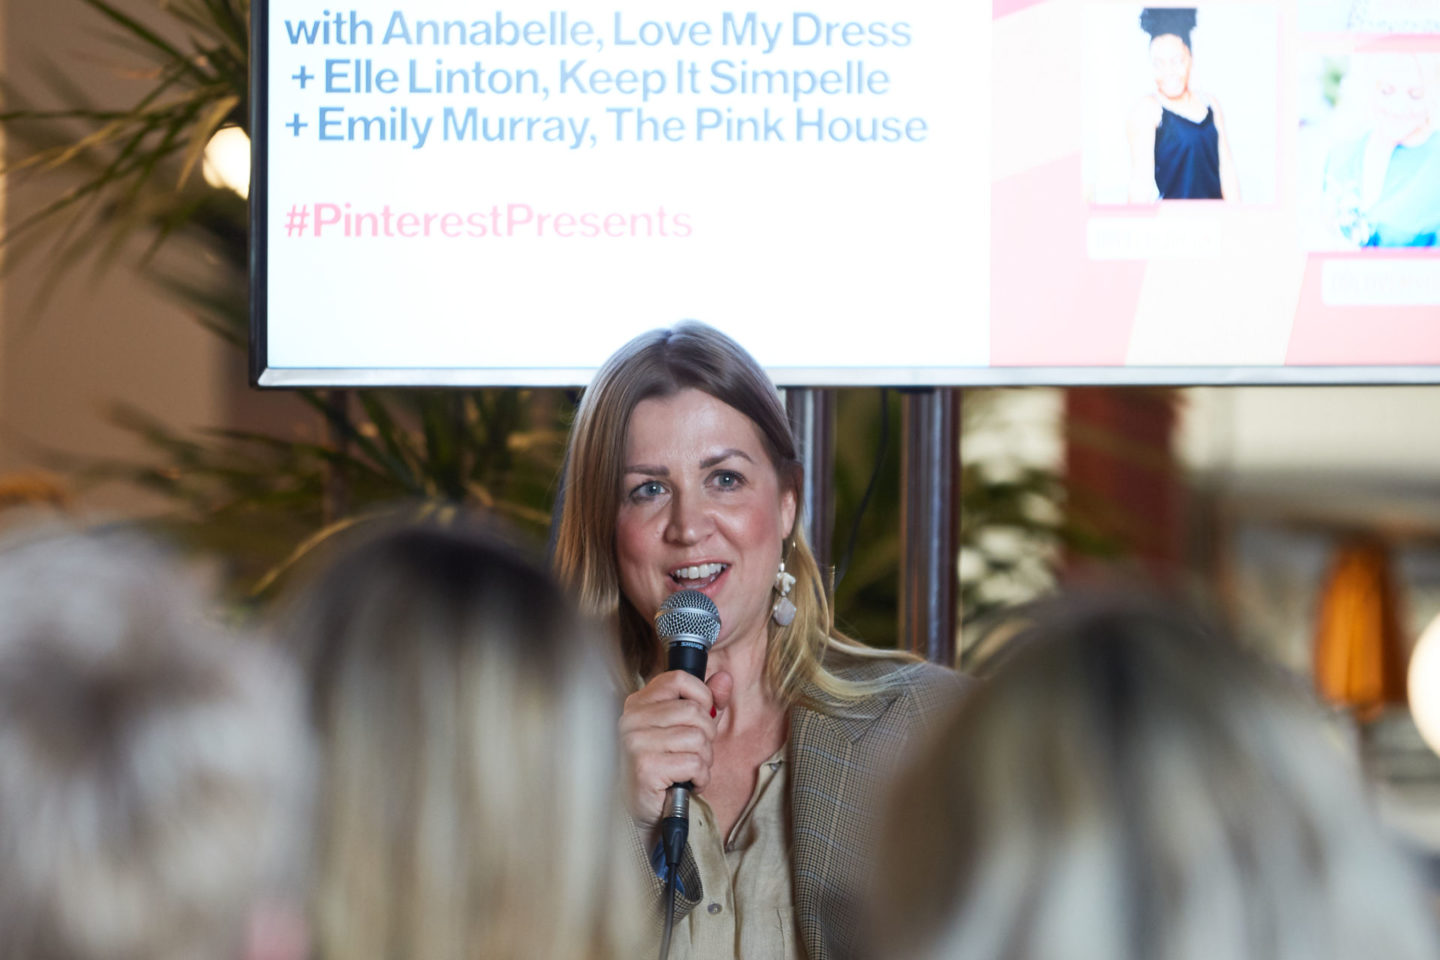 Elle Linton - keep it simpElle Pinterest Present Weddings Panel